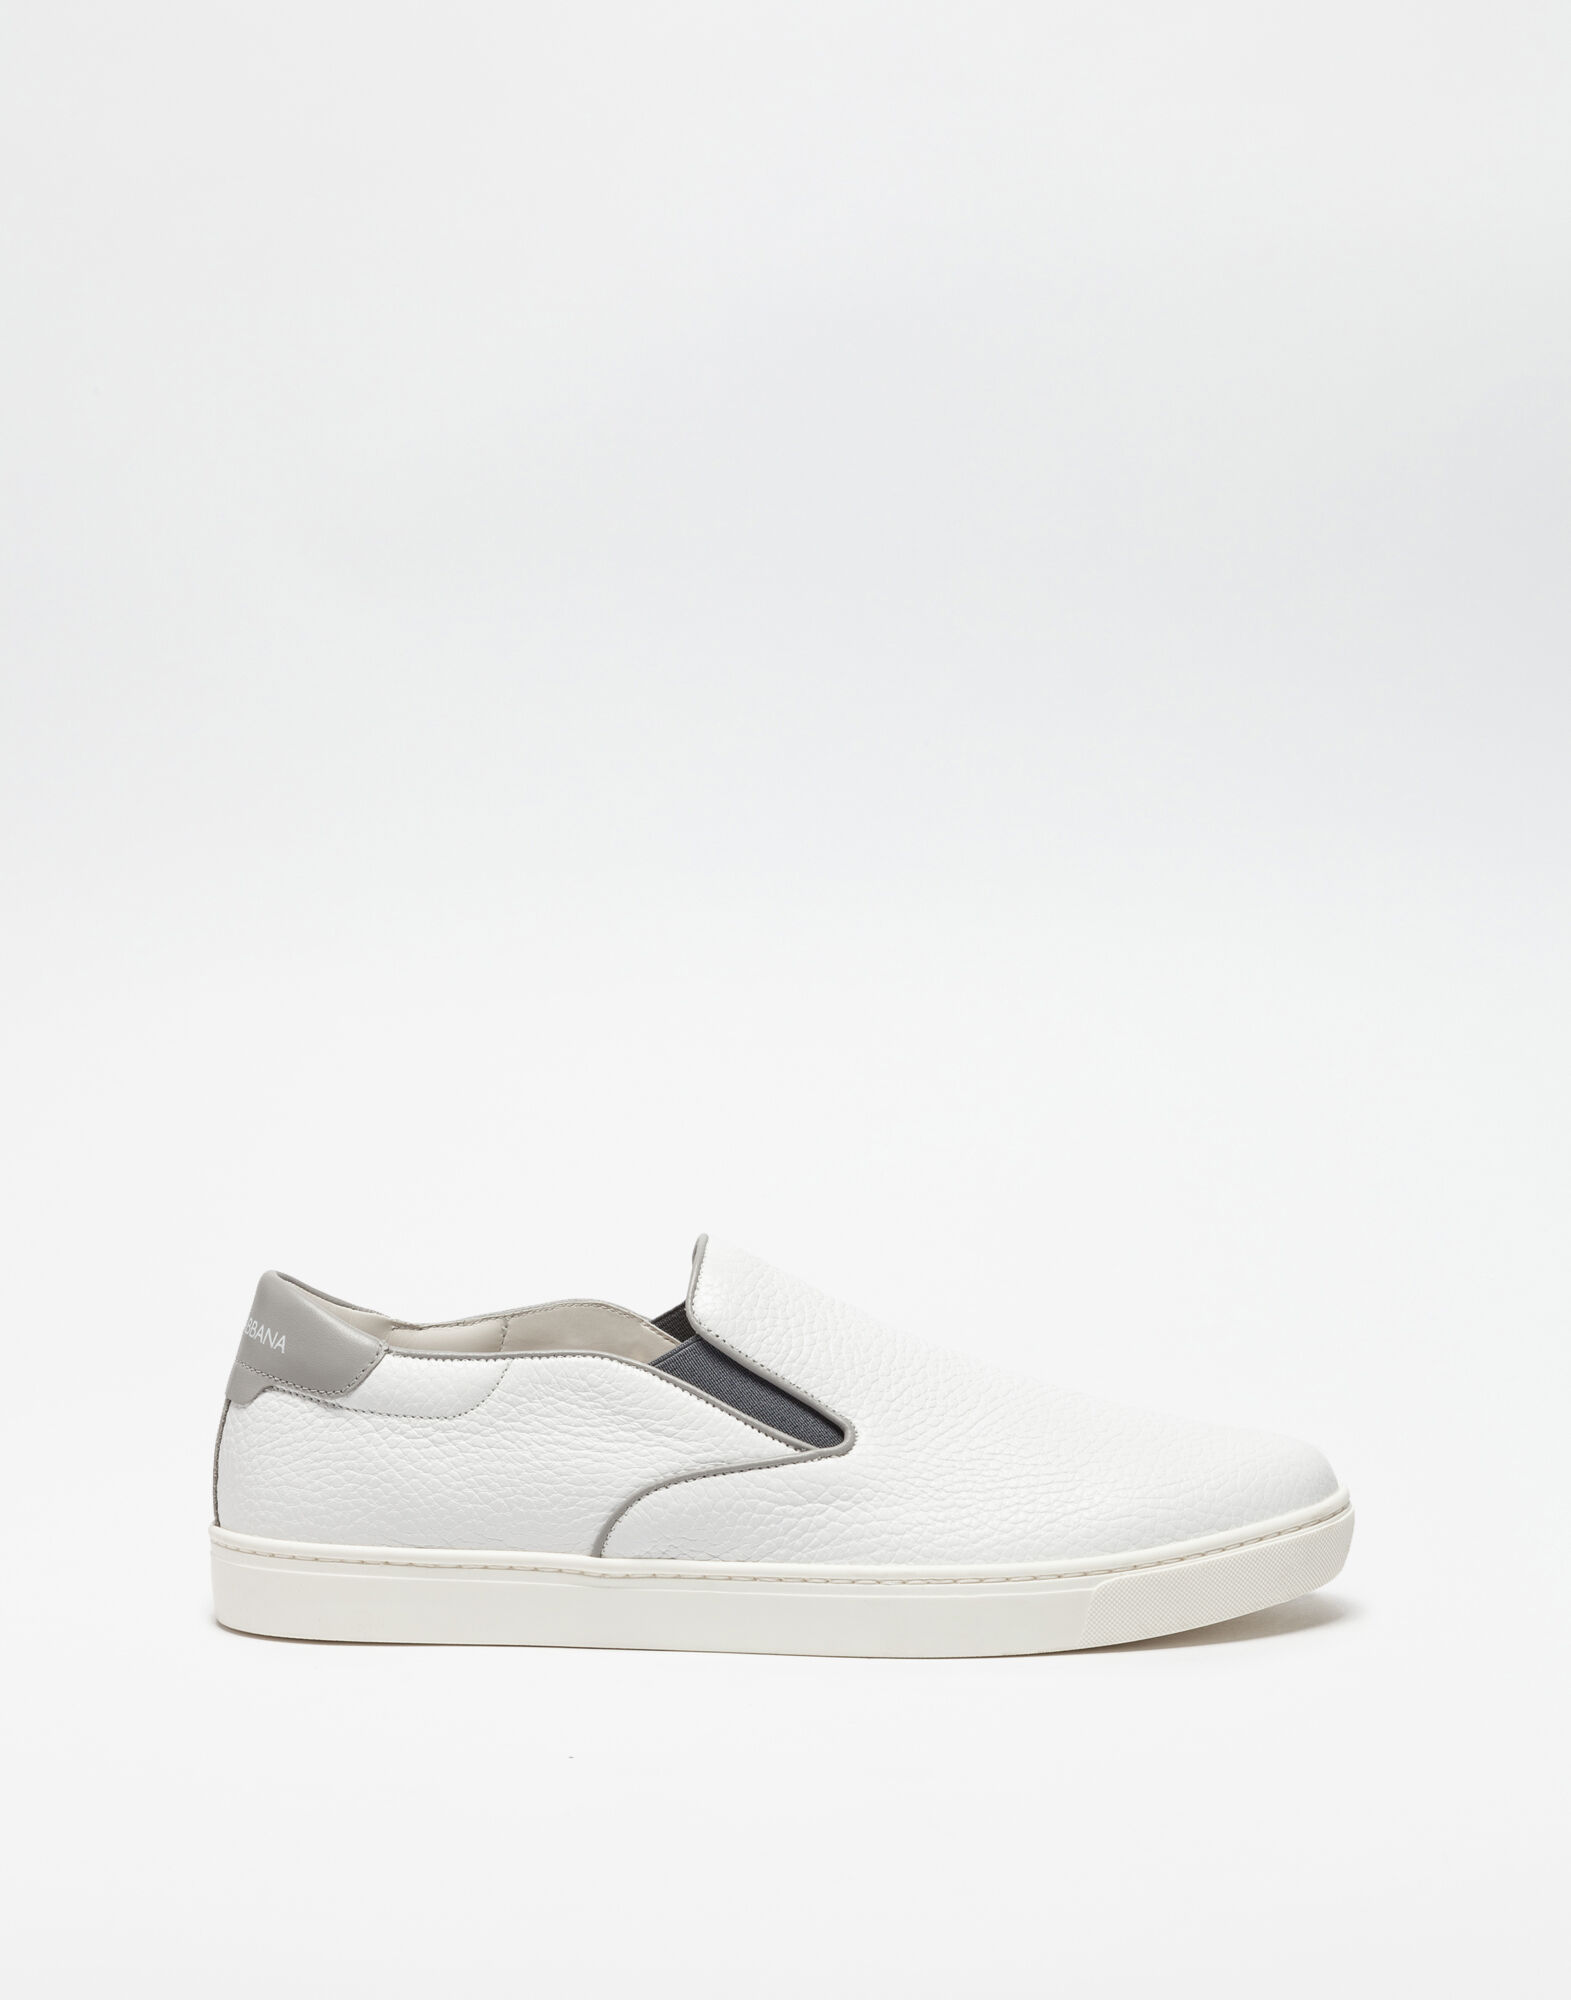 LEATHER LONDON SLIP-ON SNEAKERS